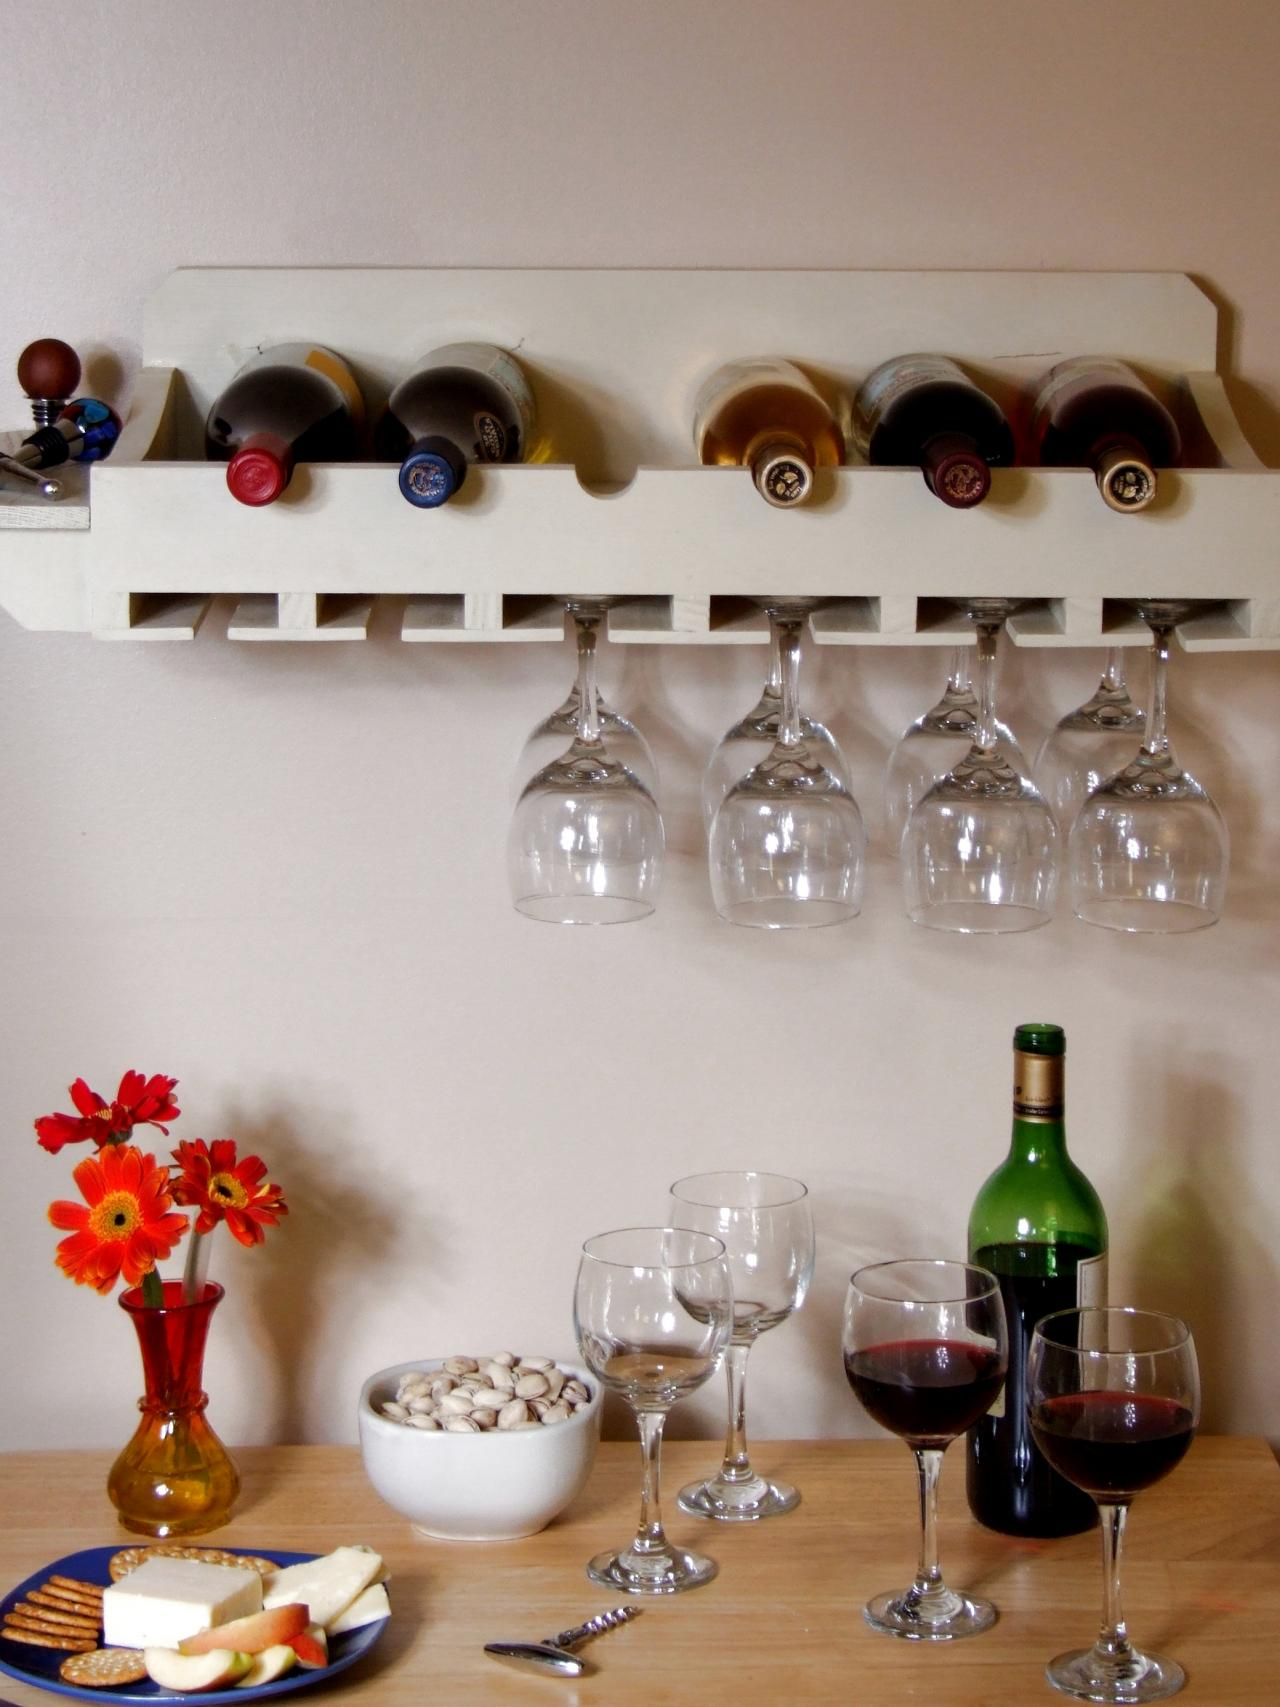 How To Build A Wine Rack For Bottles And Glasses How Tos Diy